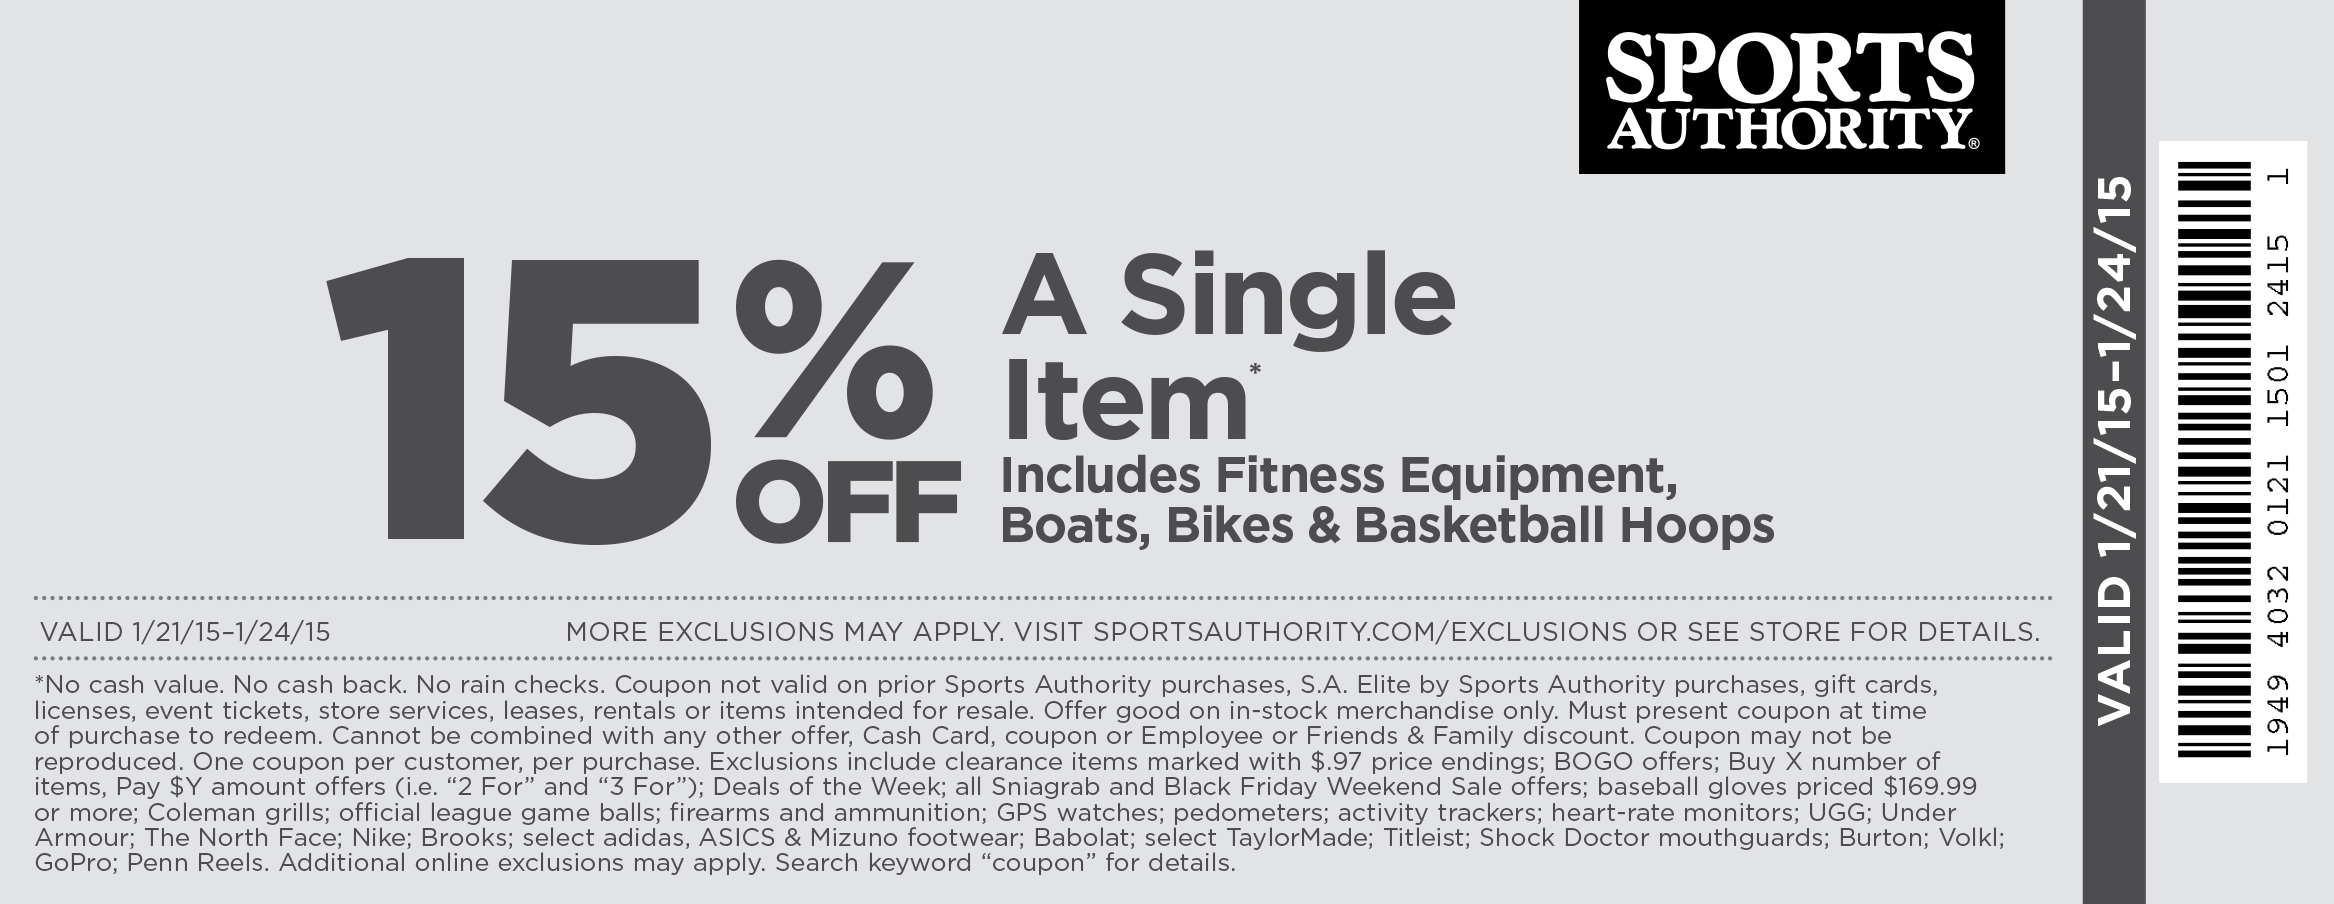 Sports Authority Coupon July 2018 15% off a single item at Sports Authority, ditto online